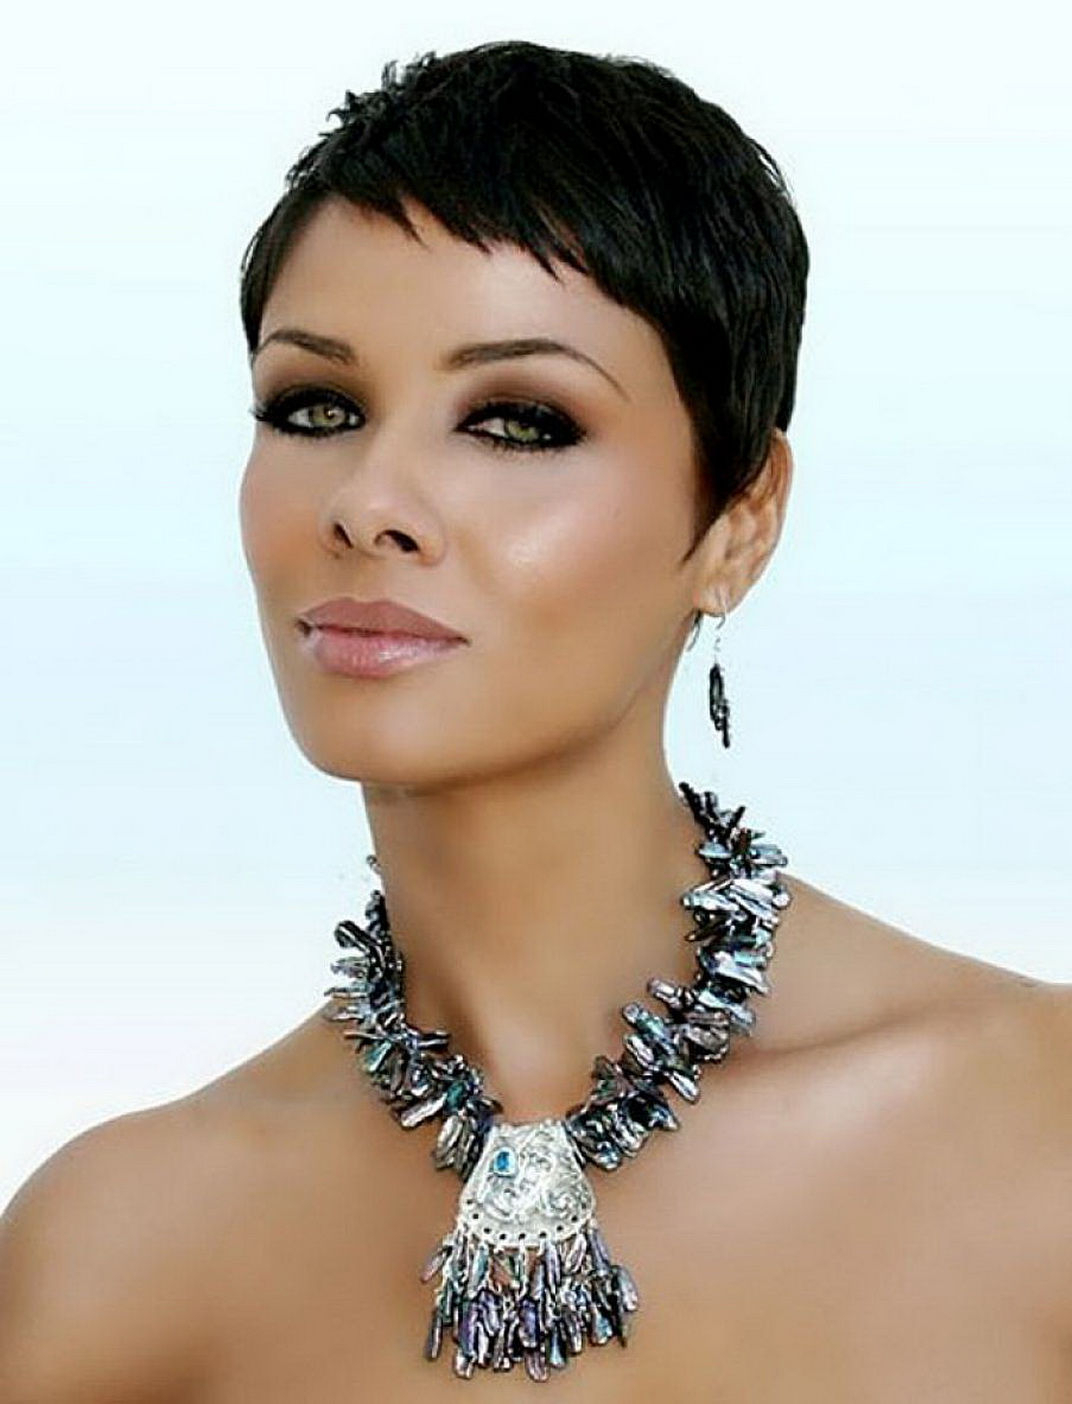 23 Of The Best Looking Short Pixie Haircuts | Styles Weekly Regarding Dramatic Short Haircuts (View 19 of 25)